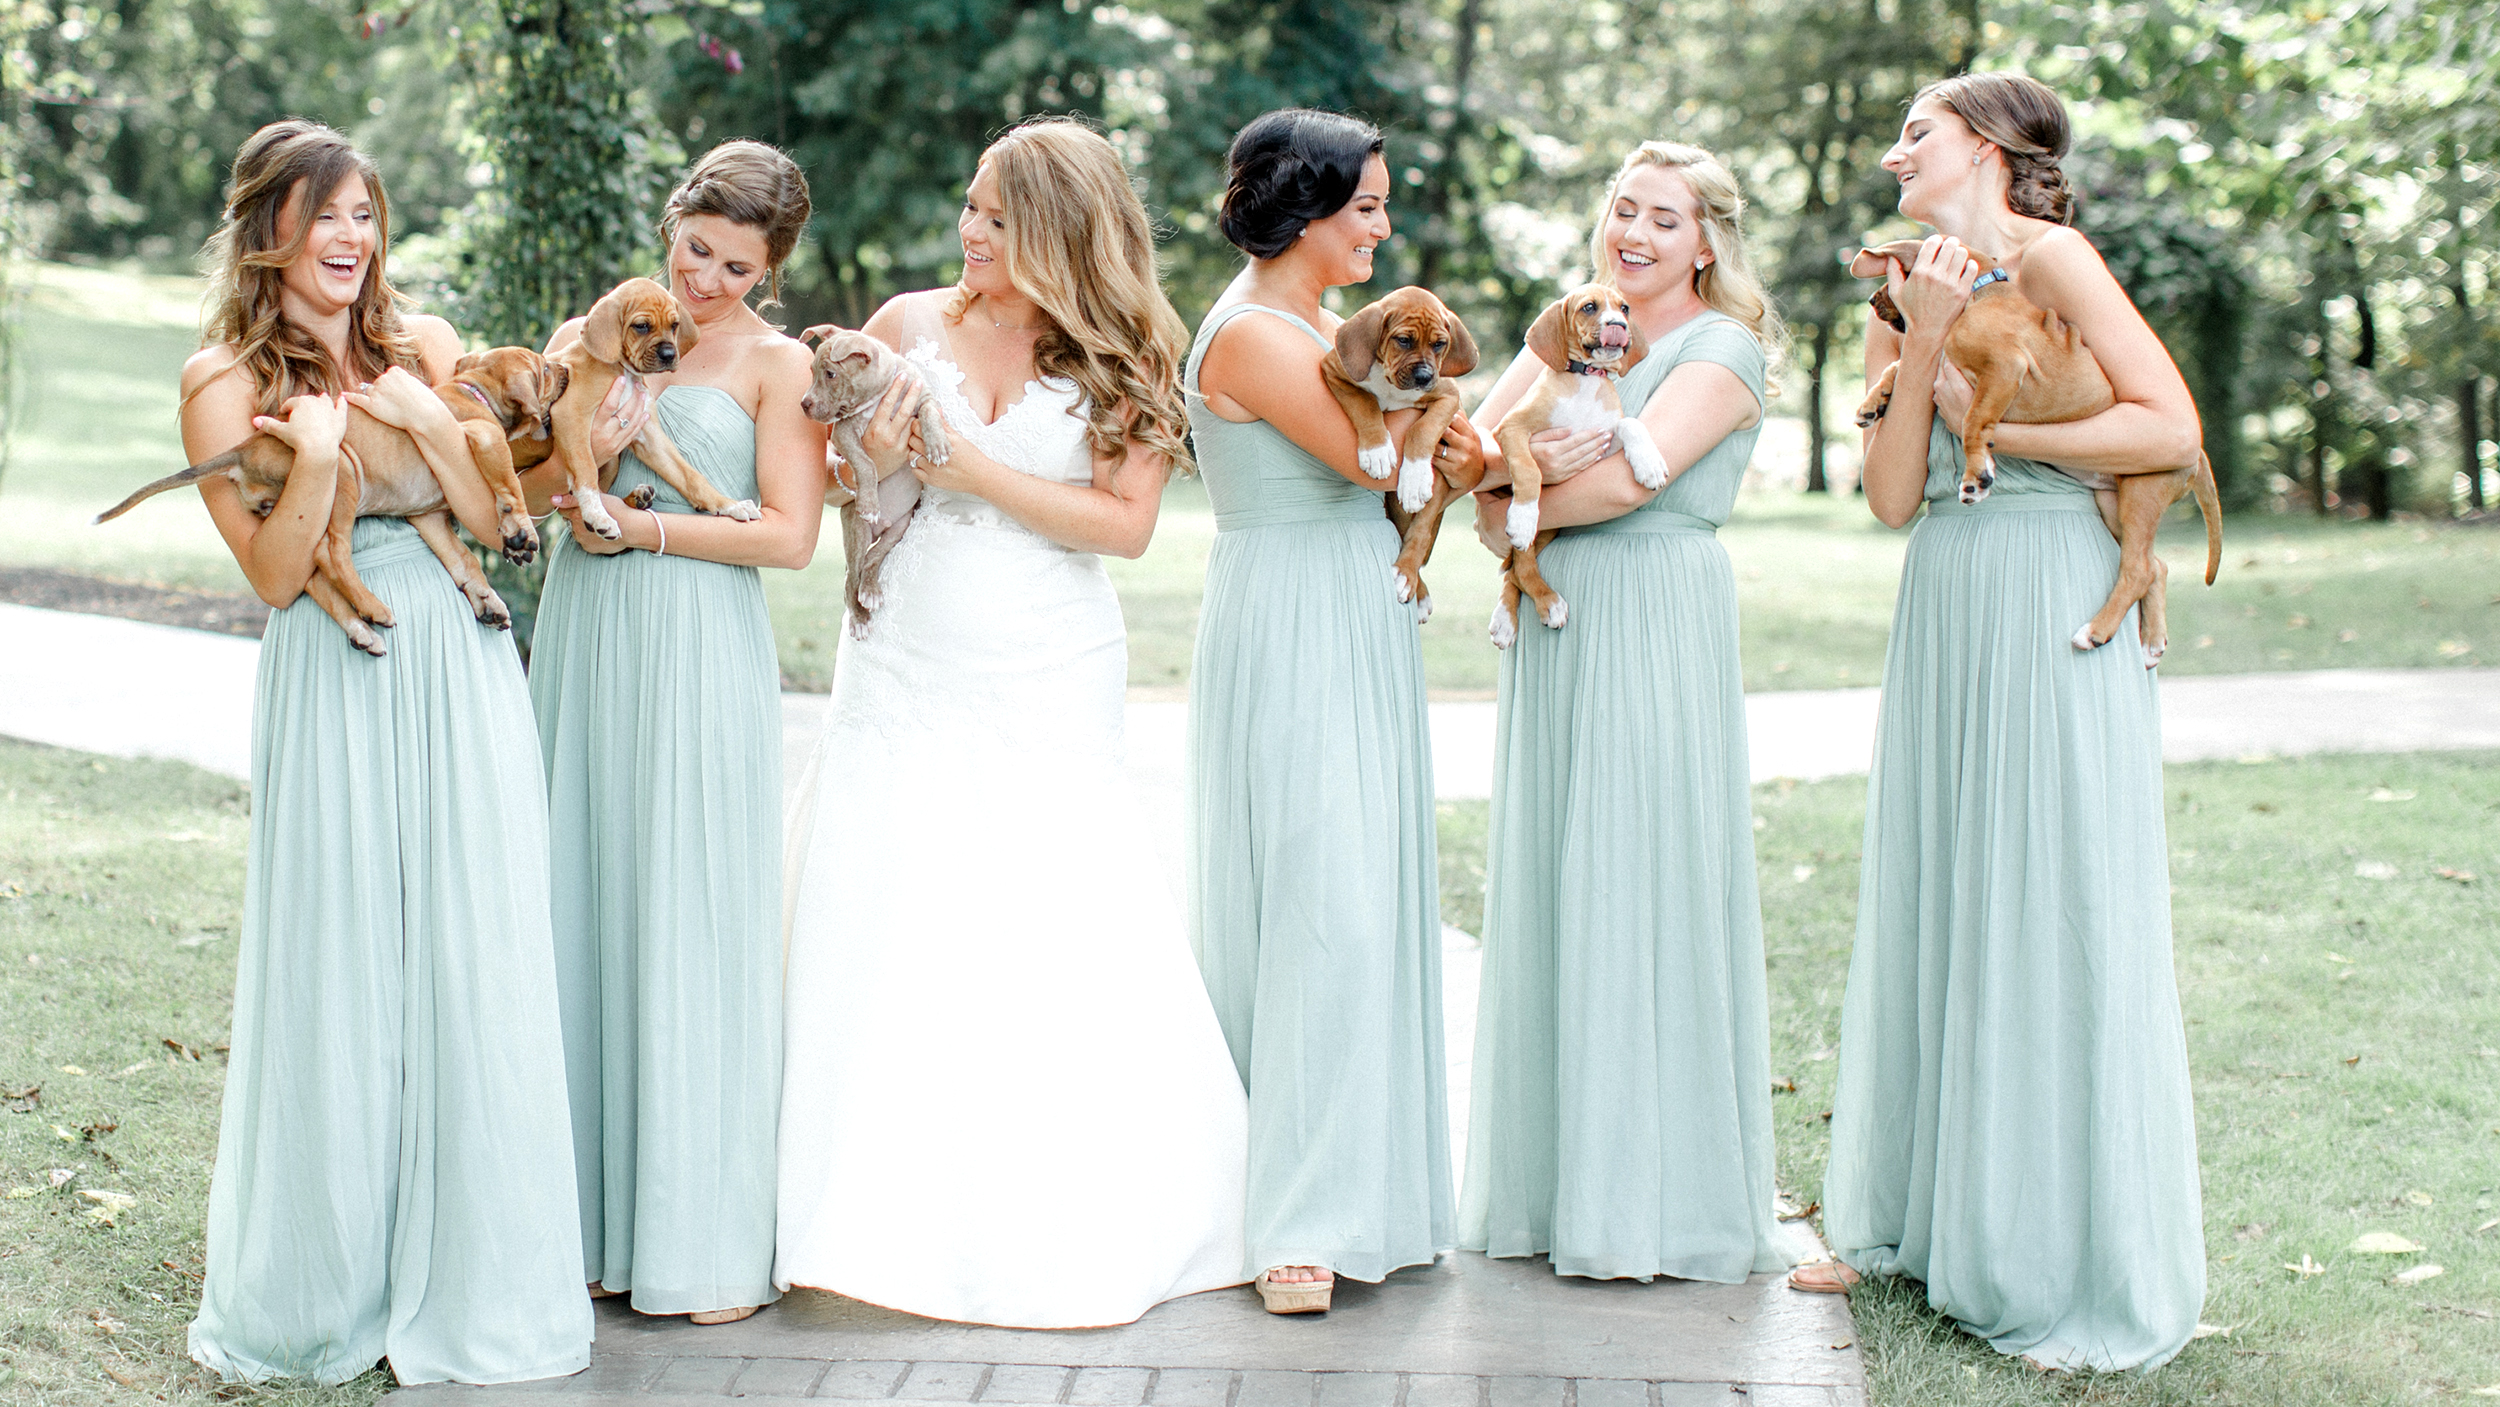 Bridesmaids hold puppies instead of flowers in adorable for Dresses for wedding party